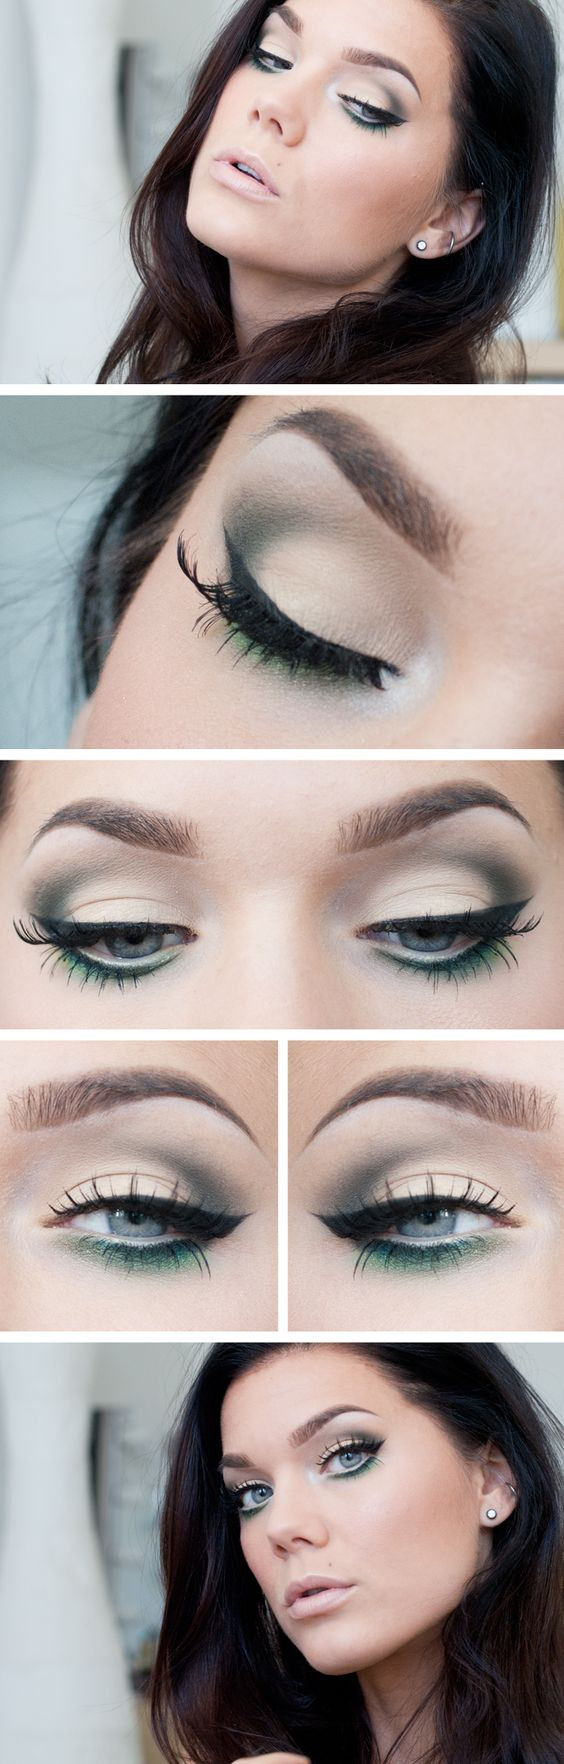 """Today's Look : """"Must be the Love"""" -Linda Hallberg (a forest green/mossy green smokey eye) 06/15/13"""